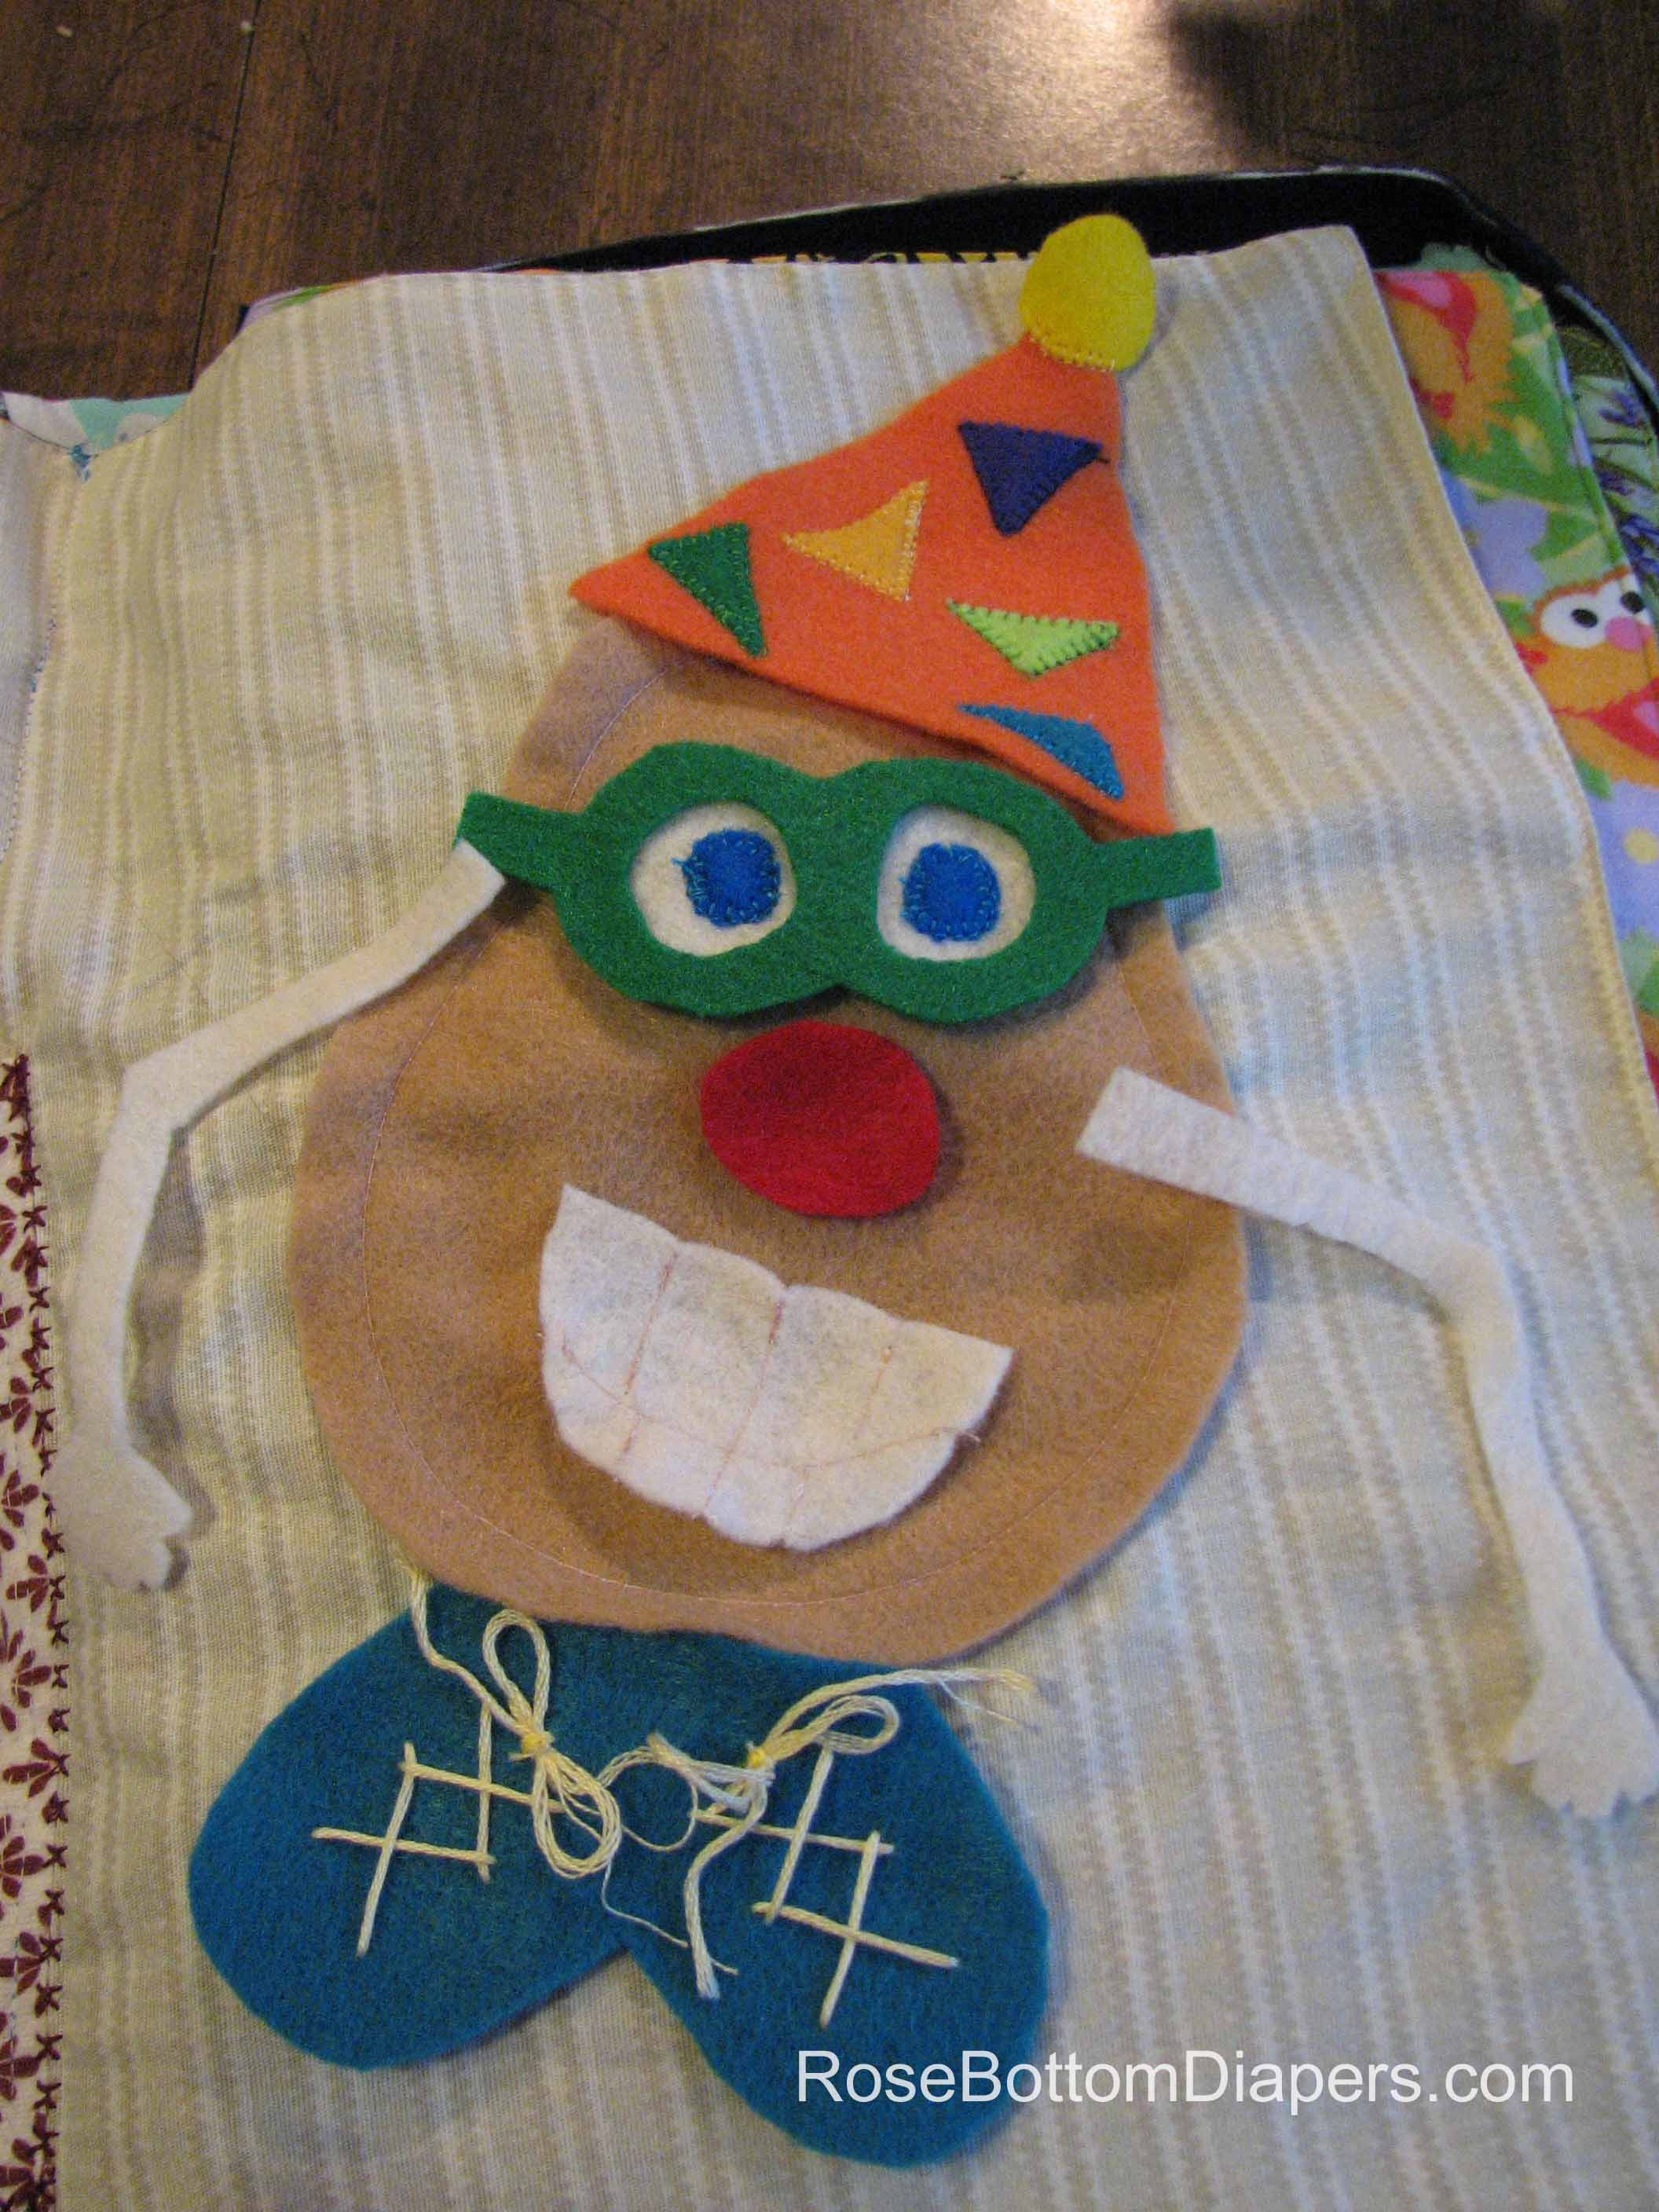 Mr. Potato Head quiet book page.  Fun learning for kids. Busy book ideas at RoseBottomDiapers.com